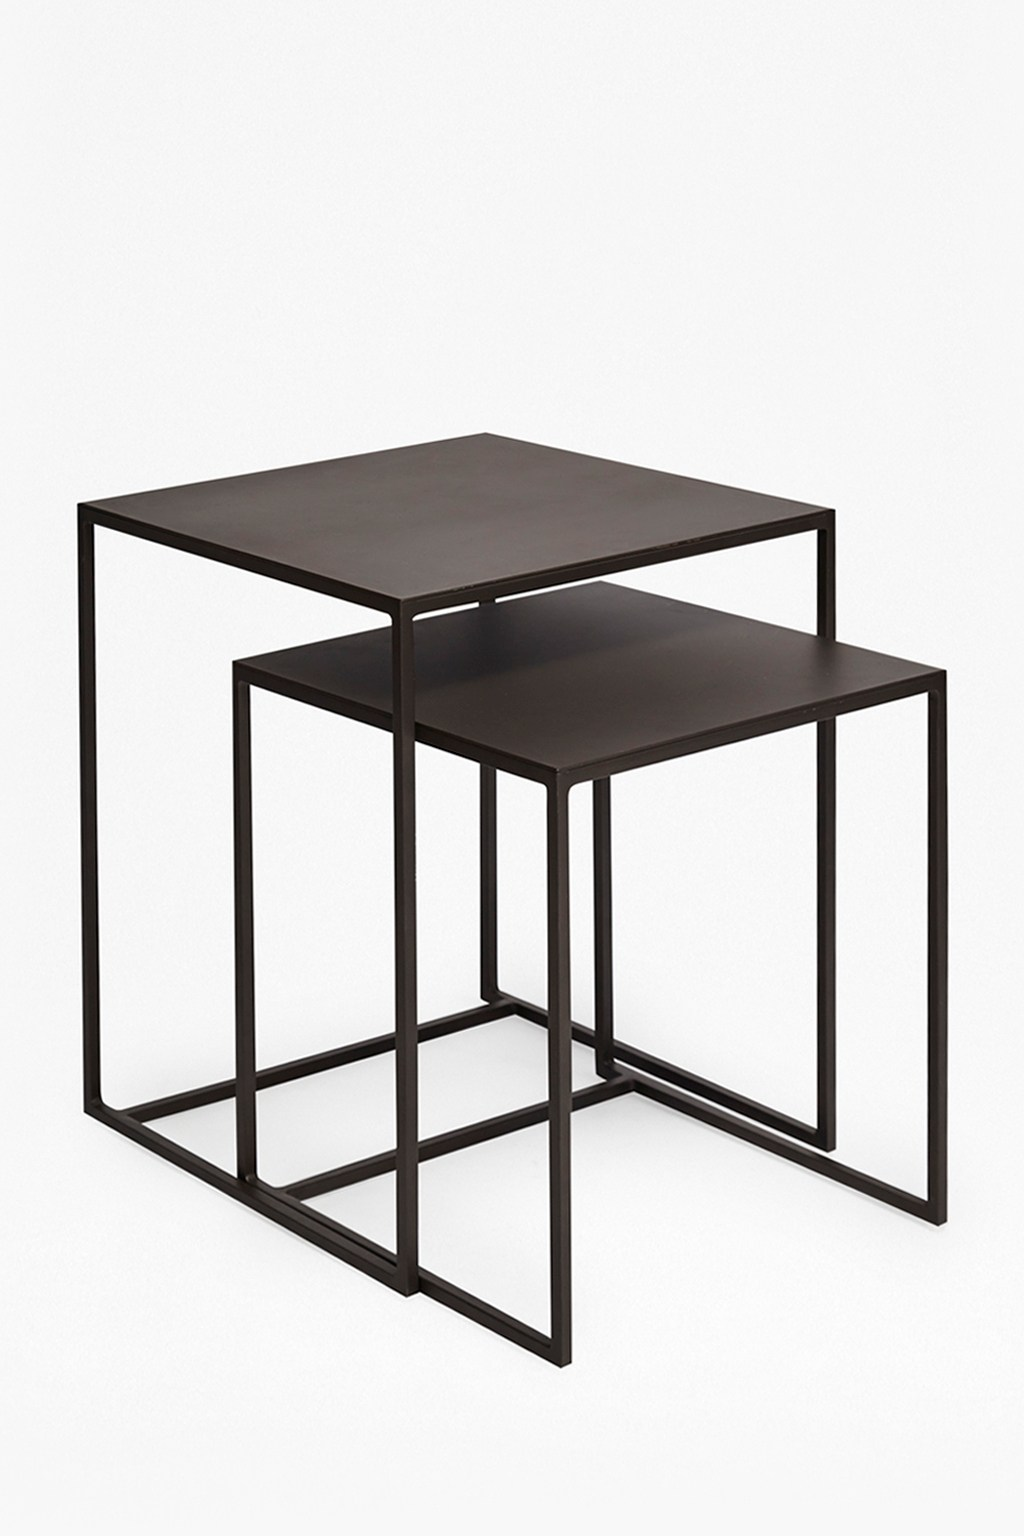 Black Metal Nesting Tables Industrial Gunmetal Nest Of Tables Collection French